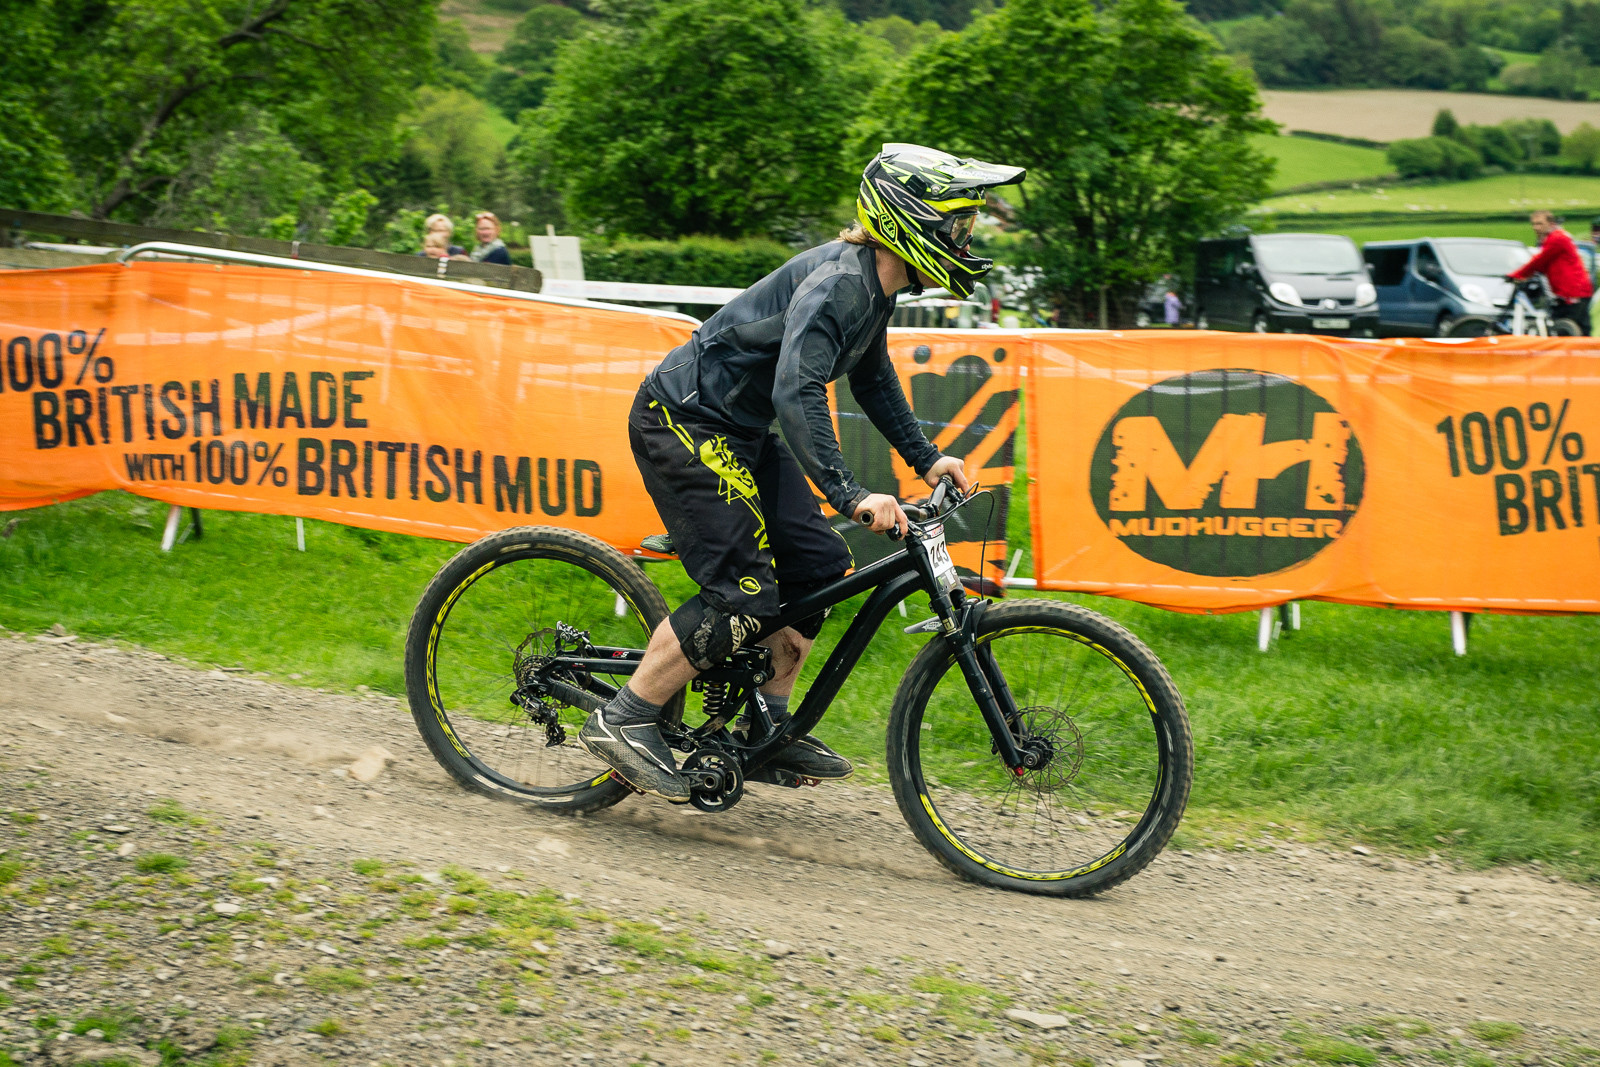 G Out at Llangollen - G-Out Project - Llangollen BDS 2015 - Mountain Biking Pictures - Vital MTB